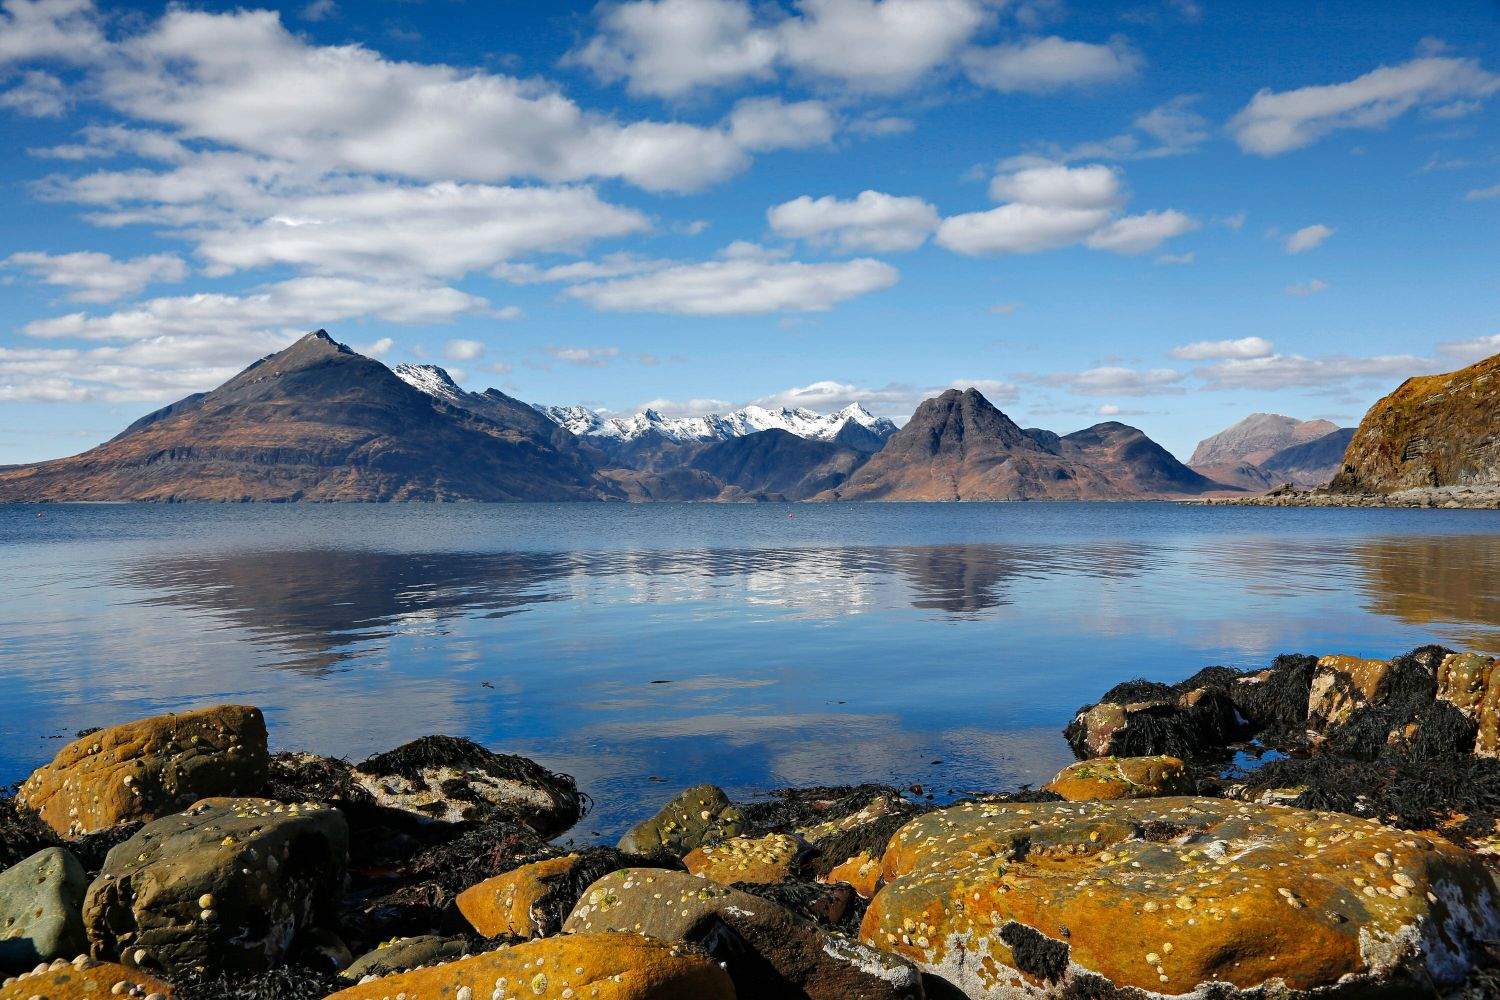 Across Loch Scavaig to the Black Cuillin mountains from Elgol